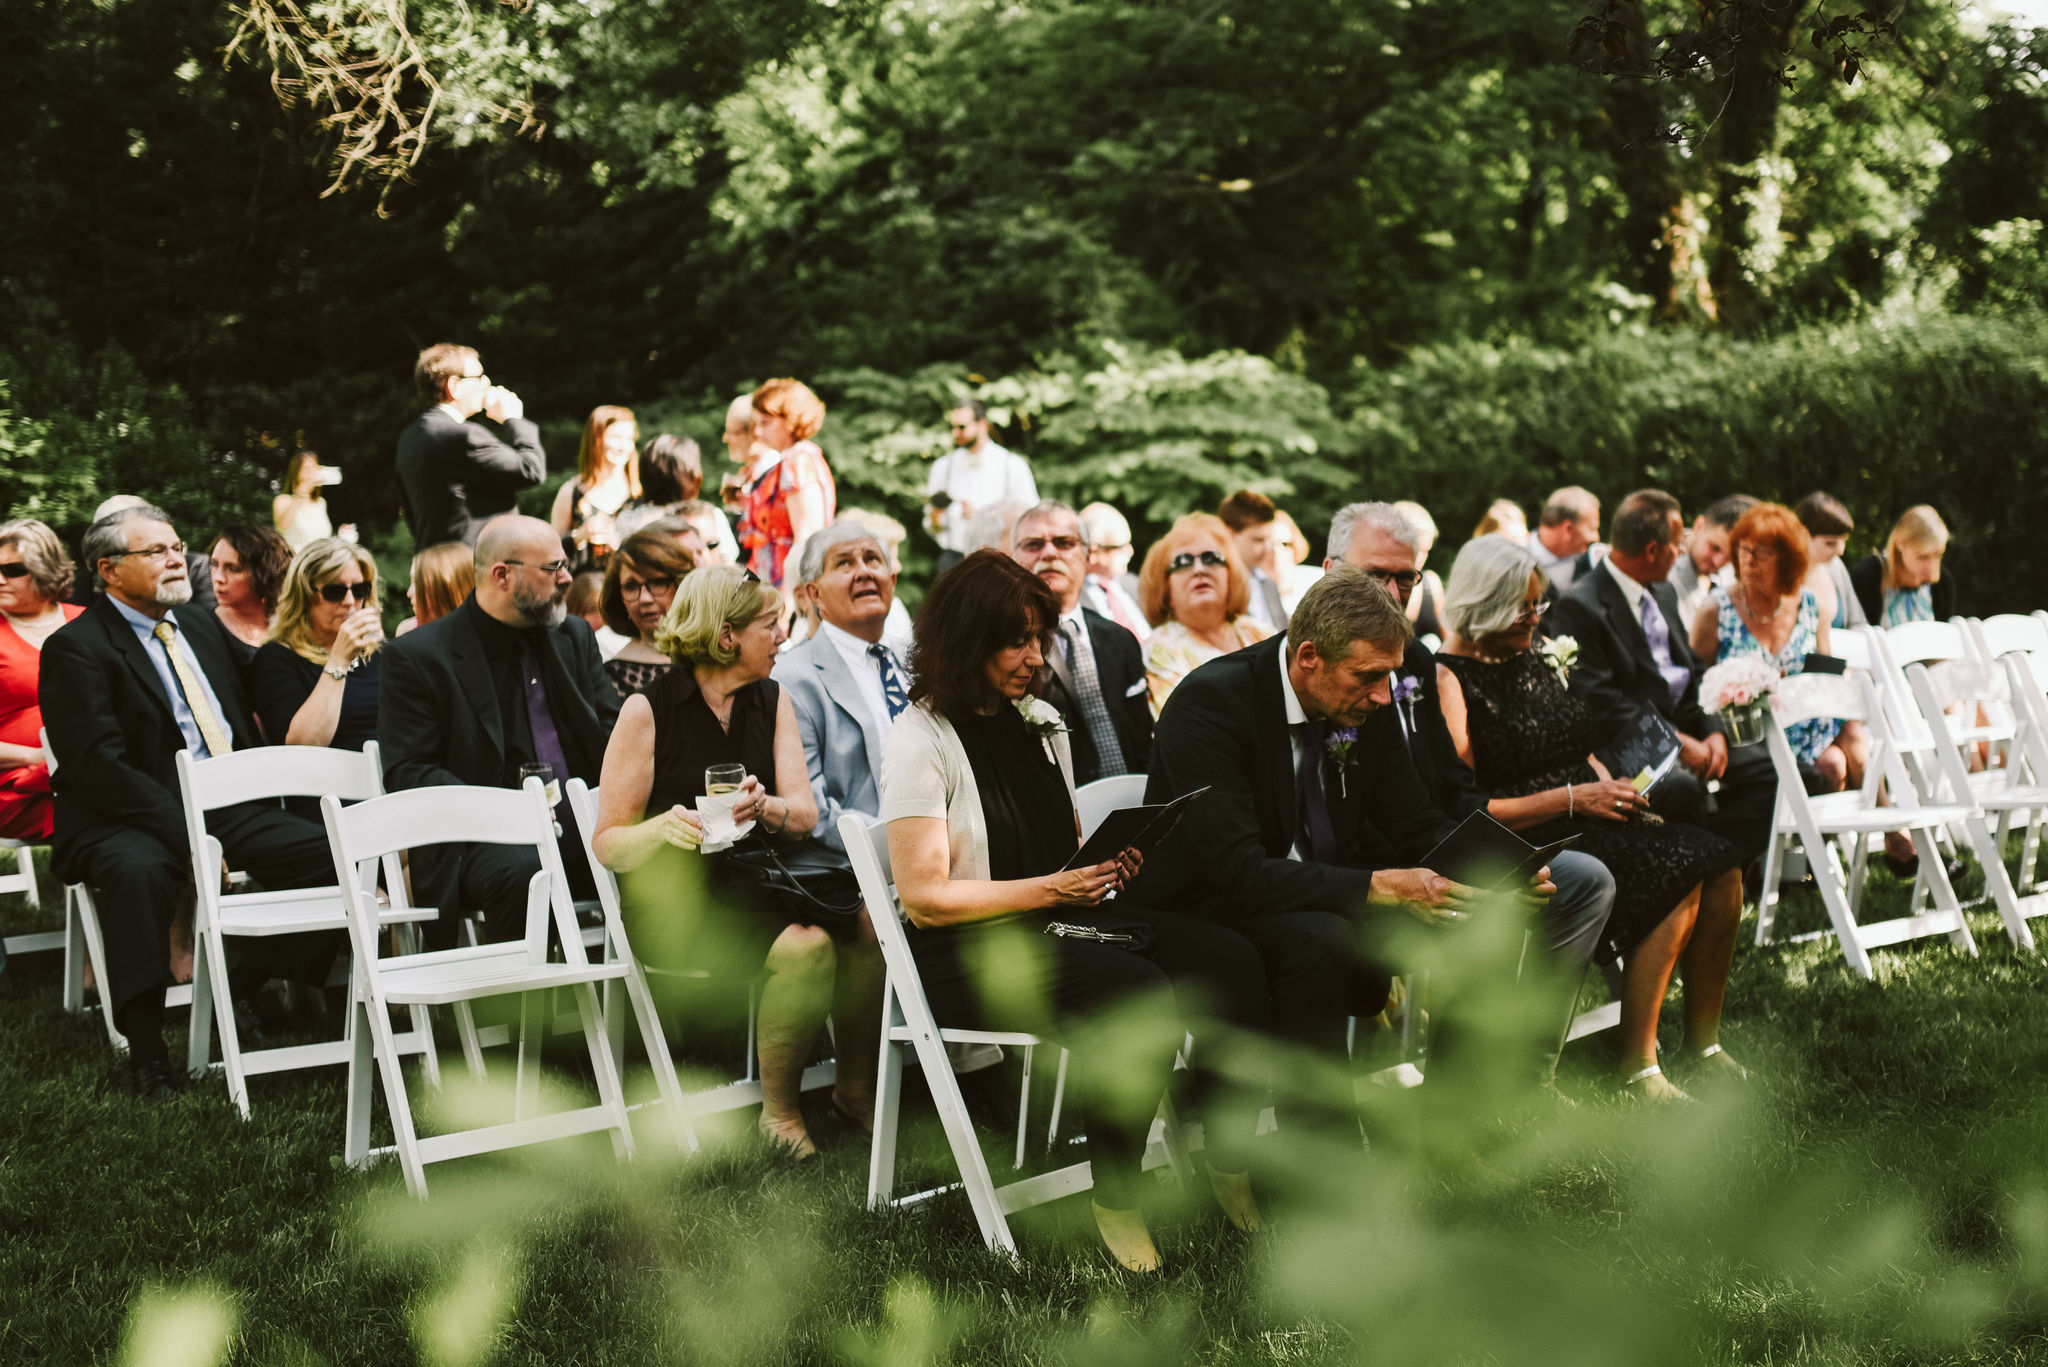 Hampden, Baltimore, Baltimore Wedding Photographer, Garden Wedding, Classic, DIY, Romantic, Guests Waiting for Ceremony to Start